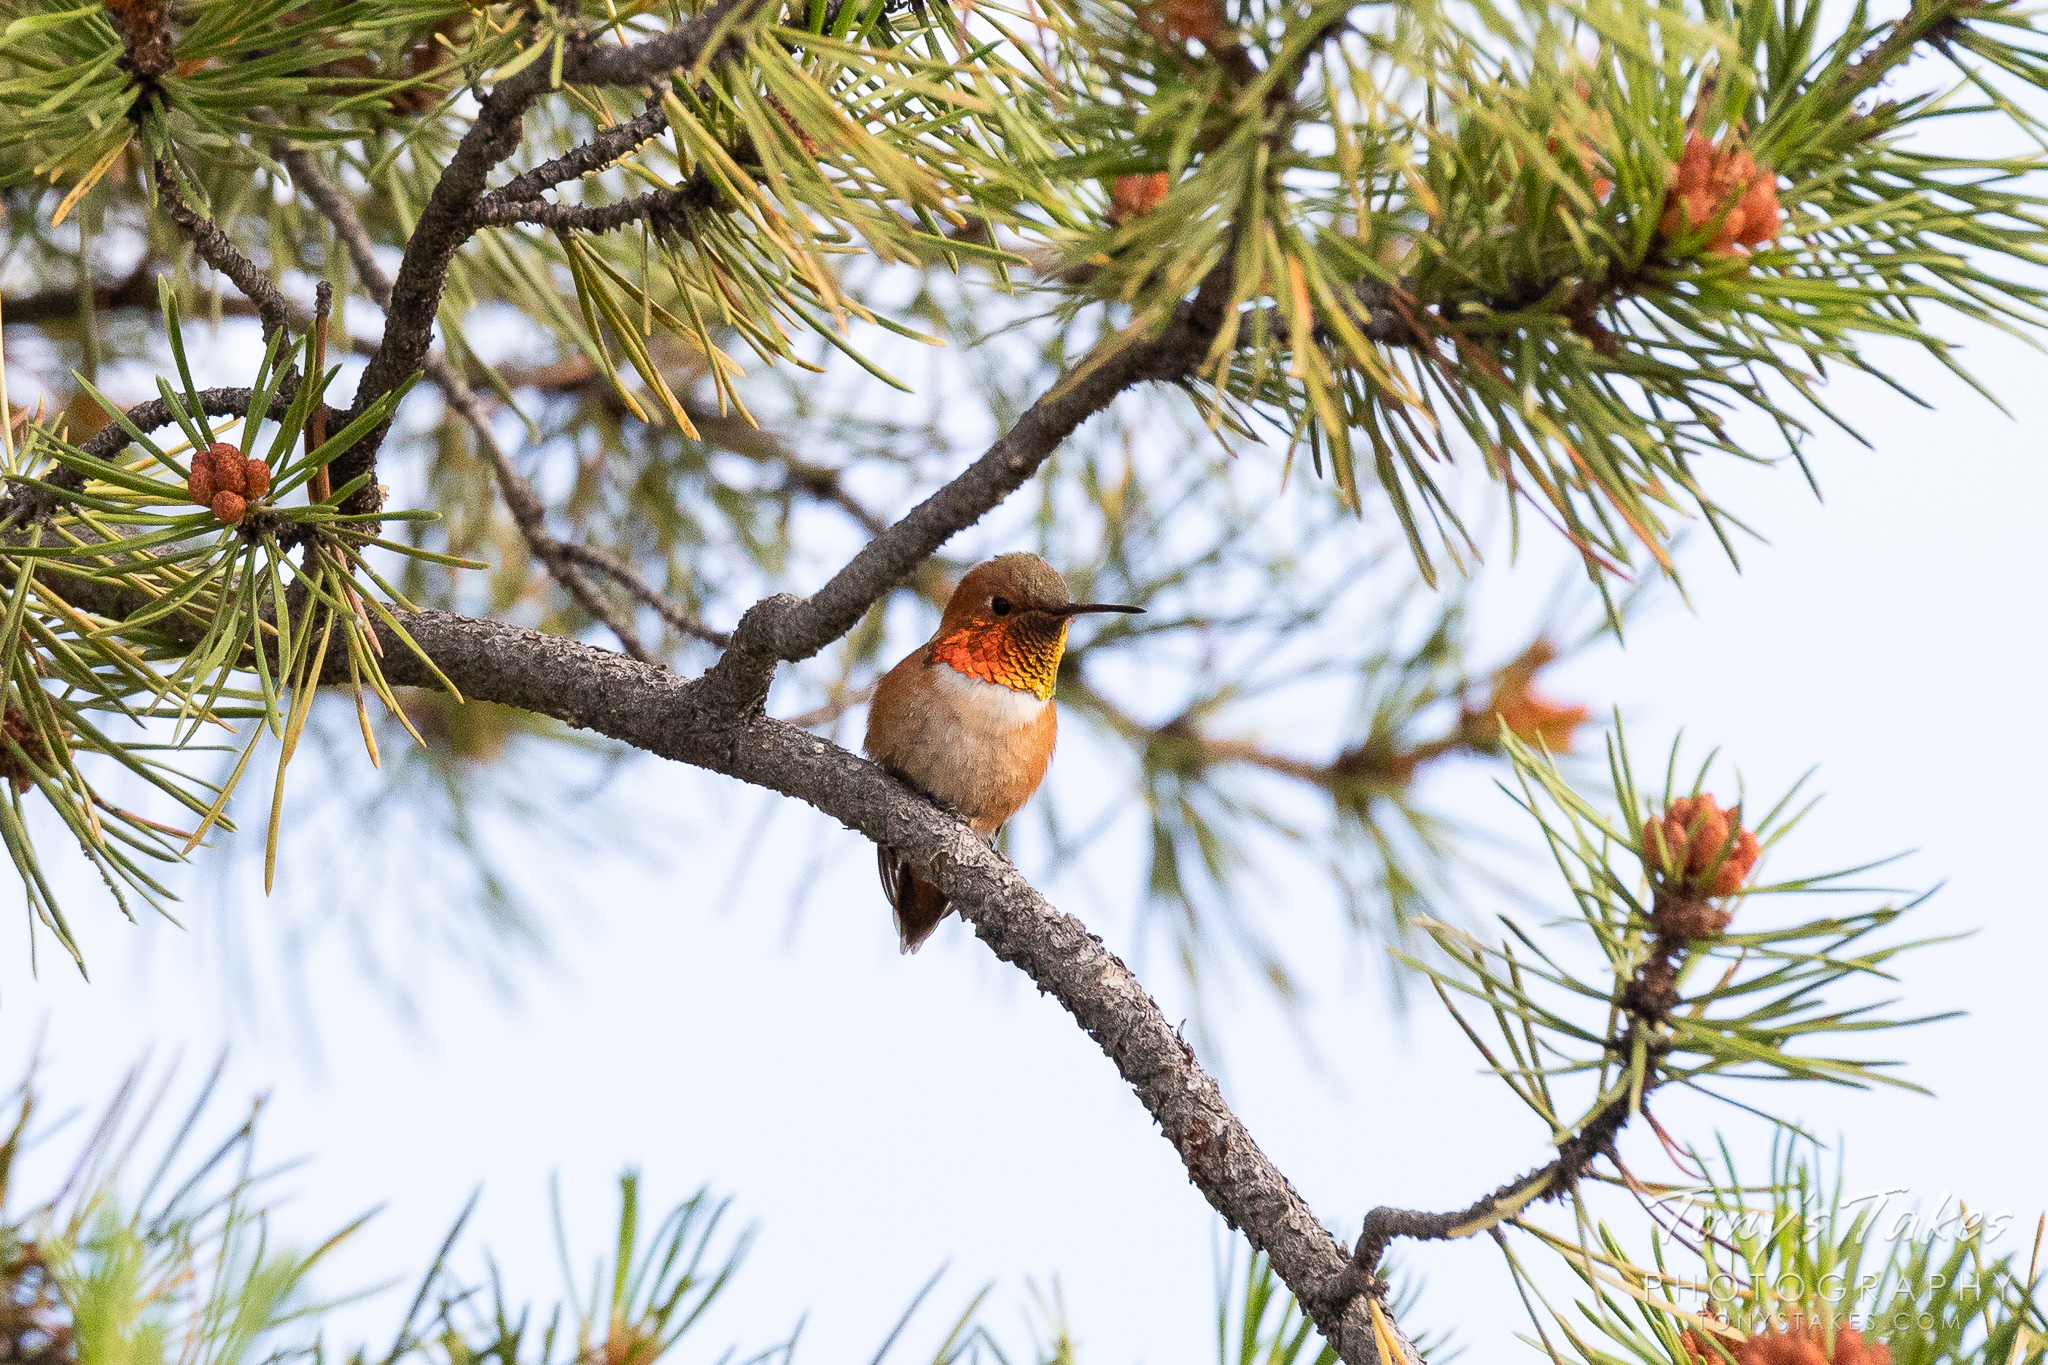 A Rufous Hummingbird hangs out in Arapaho National Forest, Colorado. (© Tony's Takes)